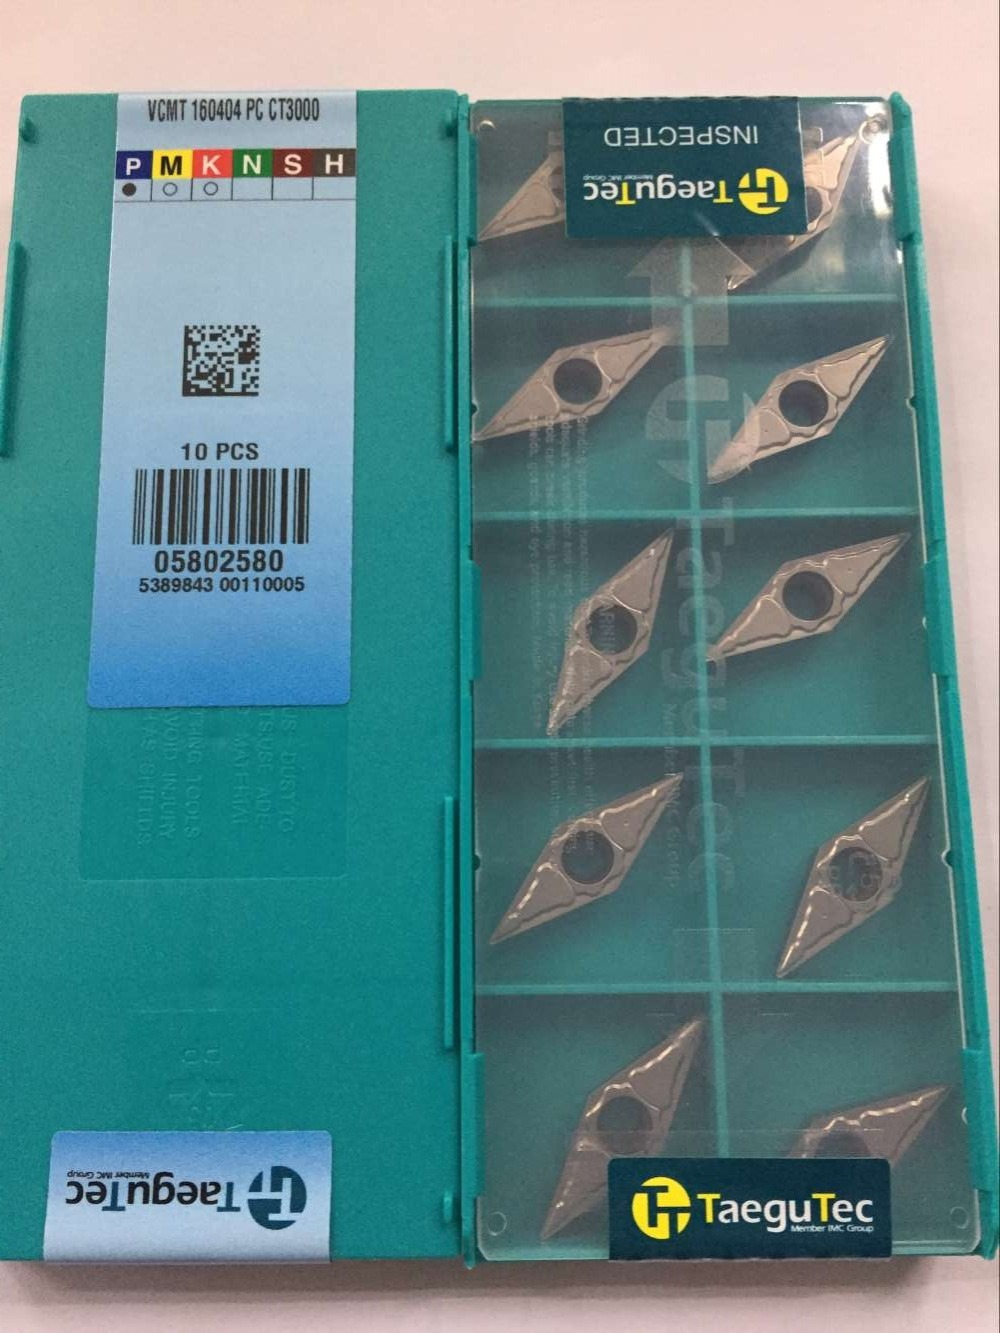 VCMT160404PC CT3000 tungsten carbide inserts turning tools Taegutec <font><b>VCMT</b></font> <font><b>160404</b></font> PC CT3000 image